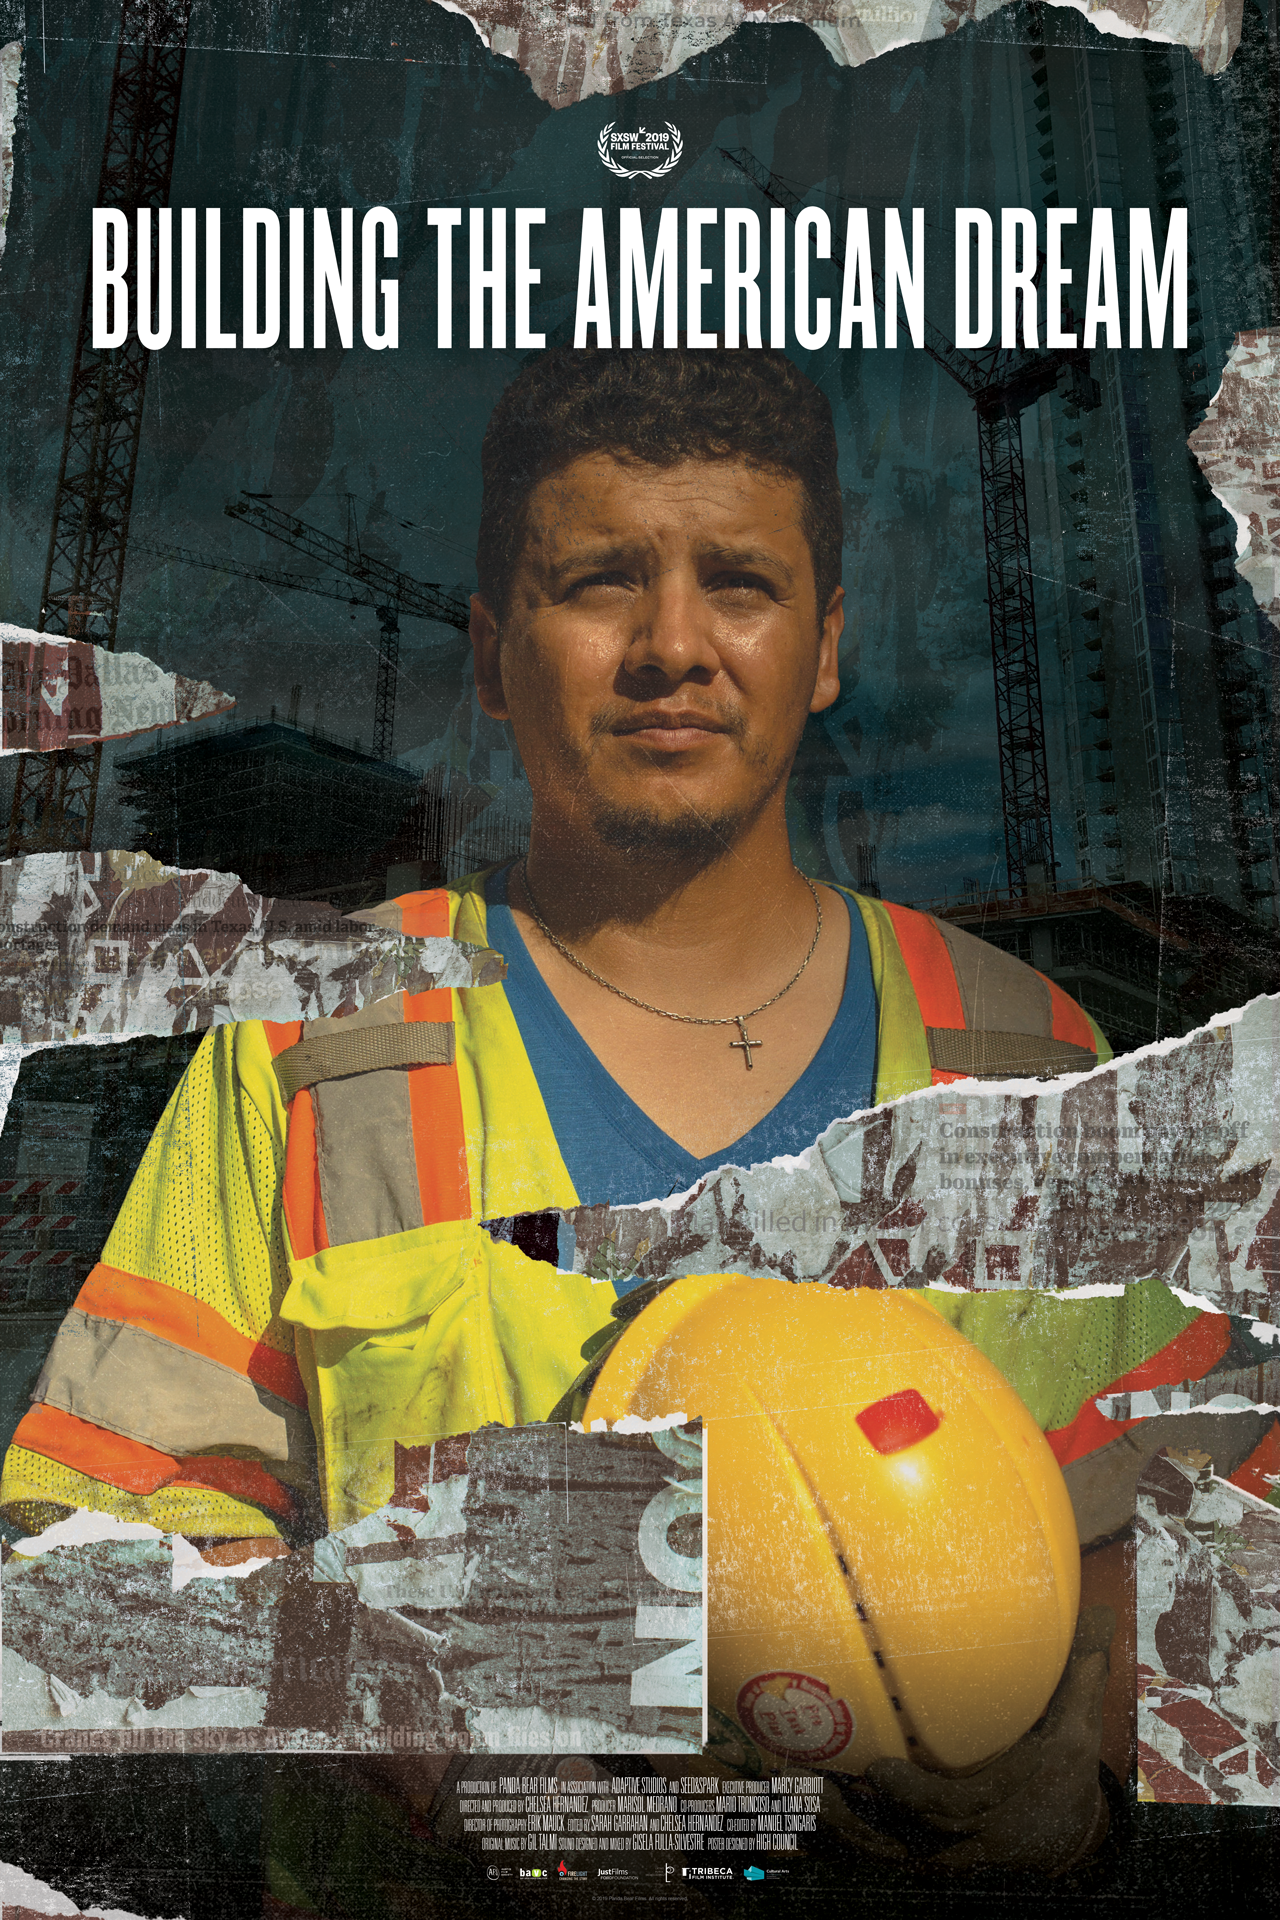 Building the American Dream poster